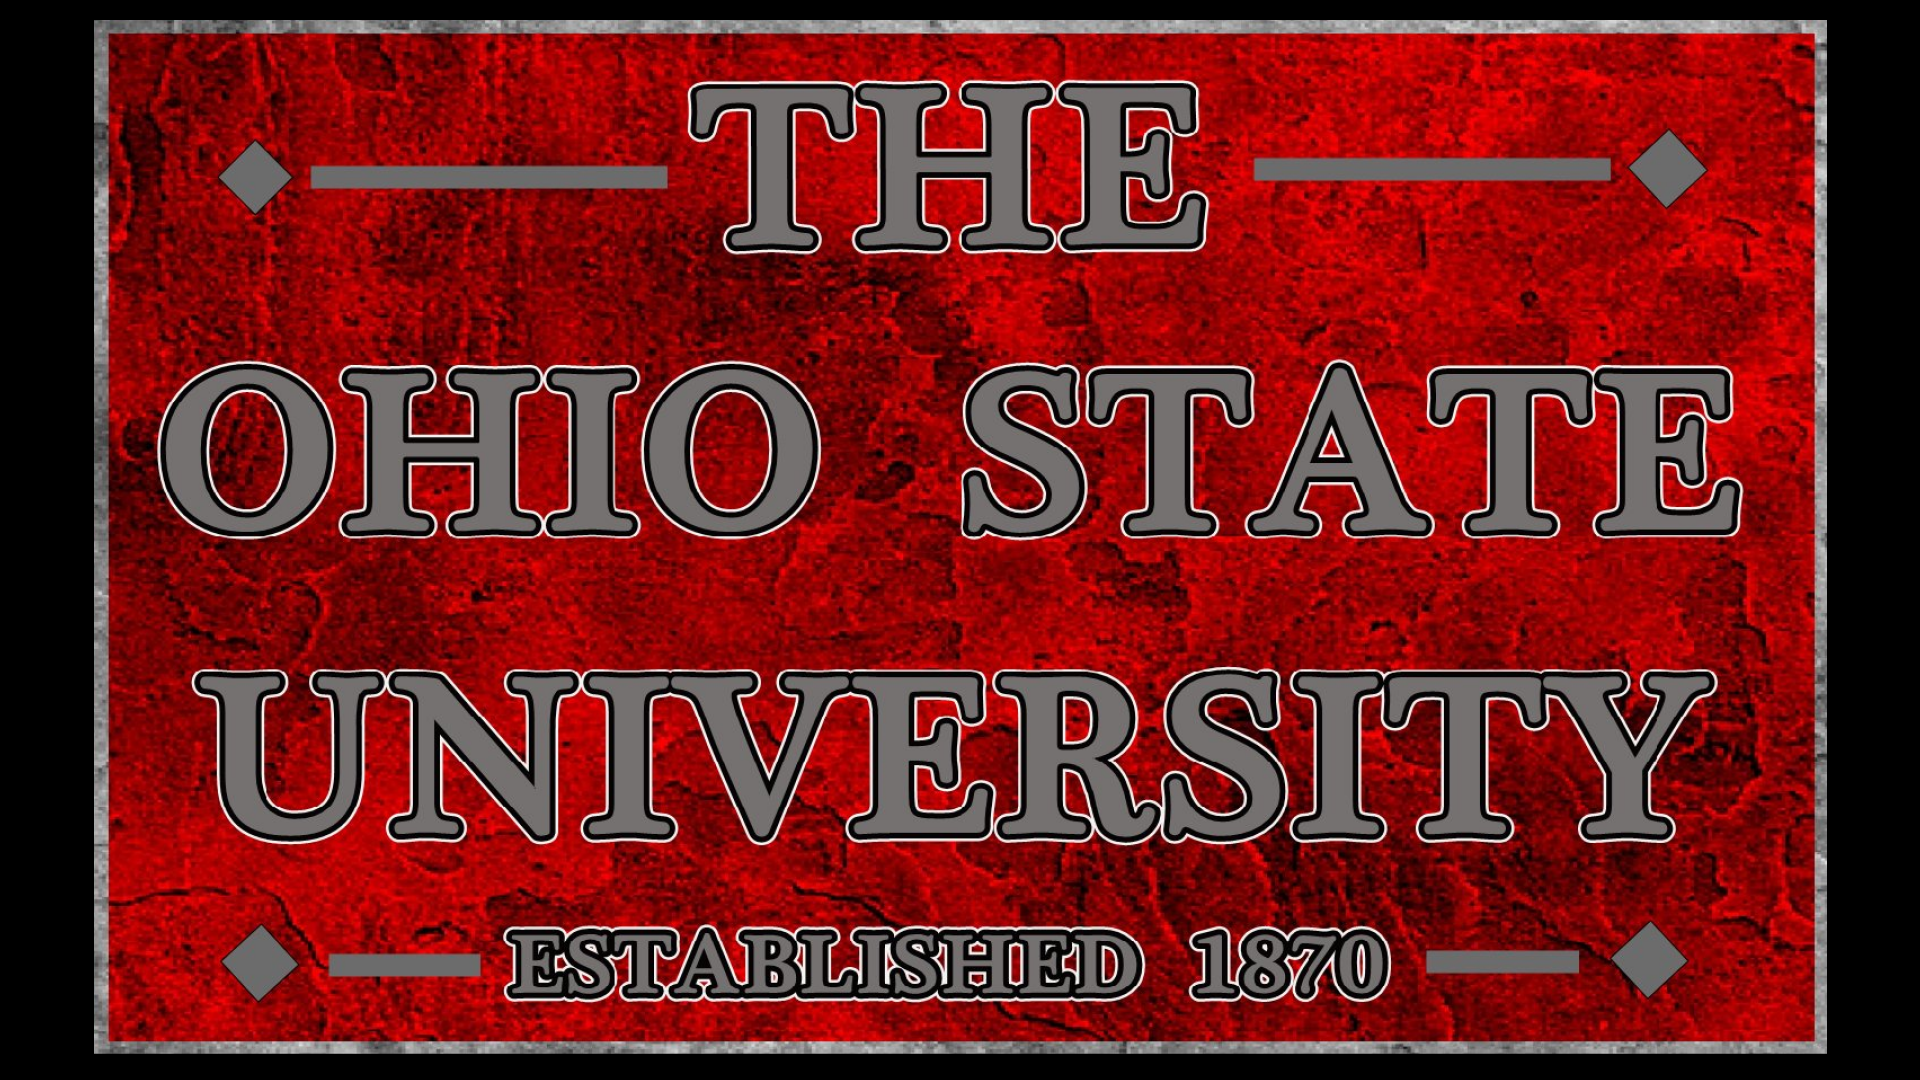 ohio university images afari ohio state university established 1870 ohio state football